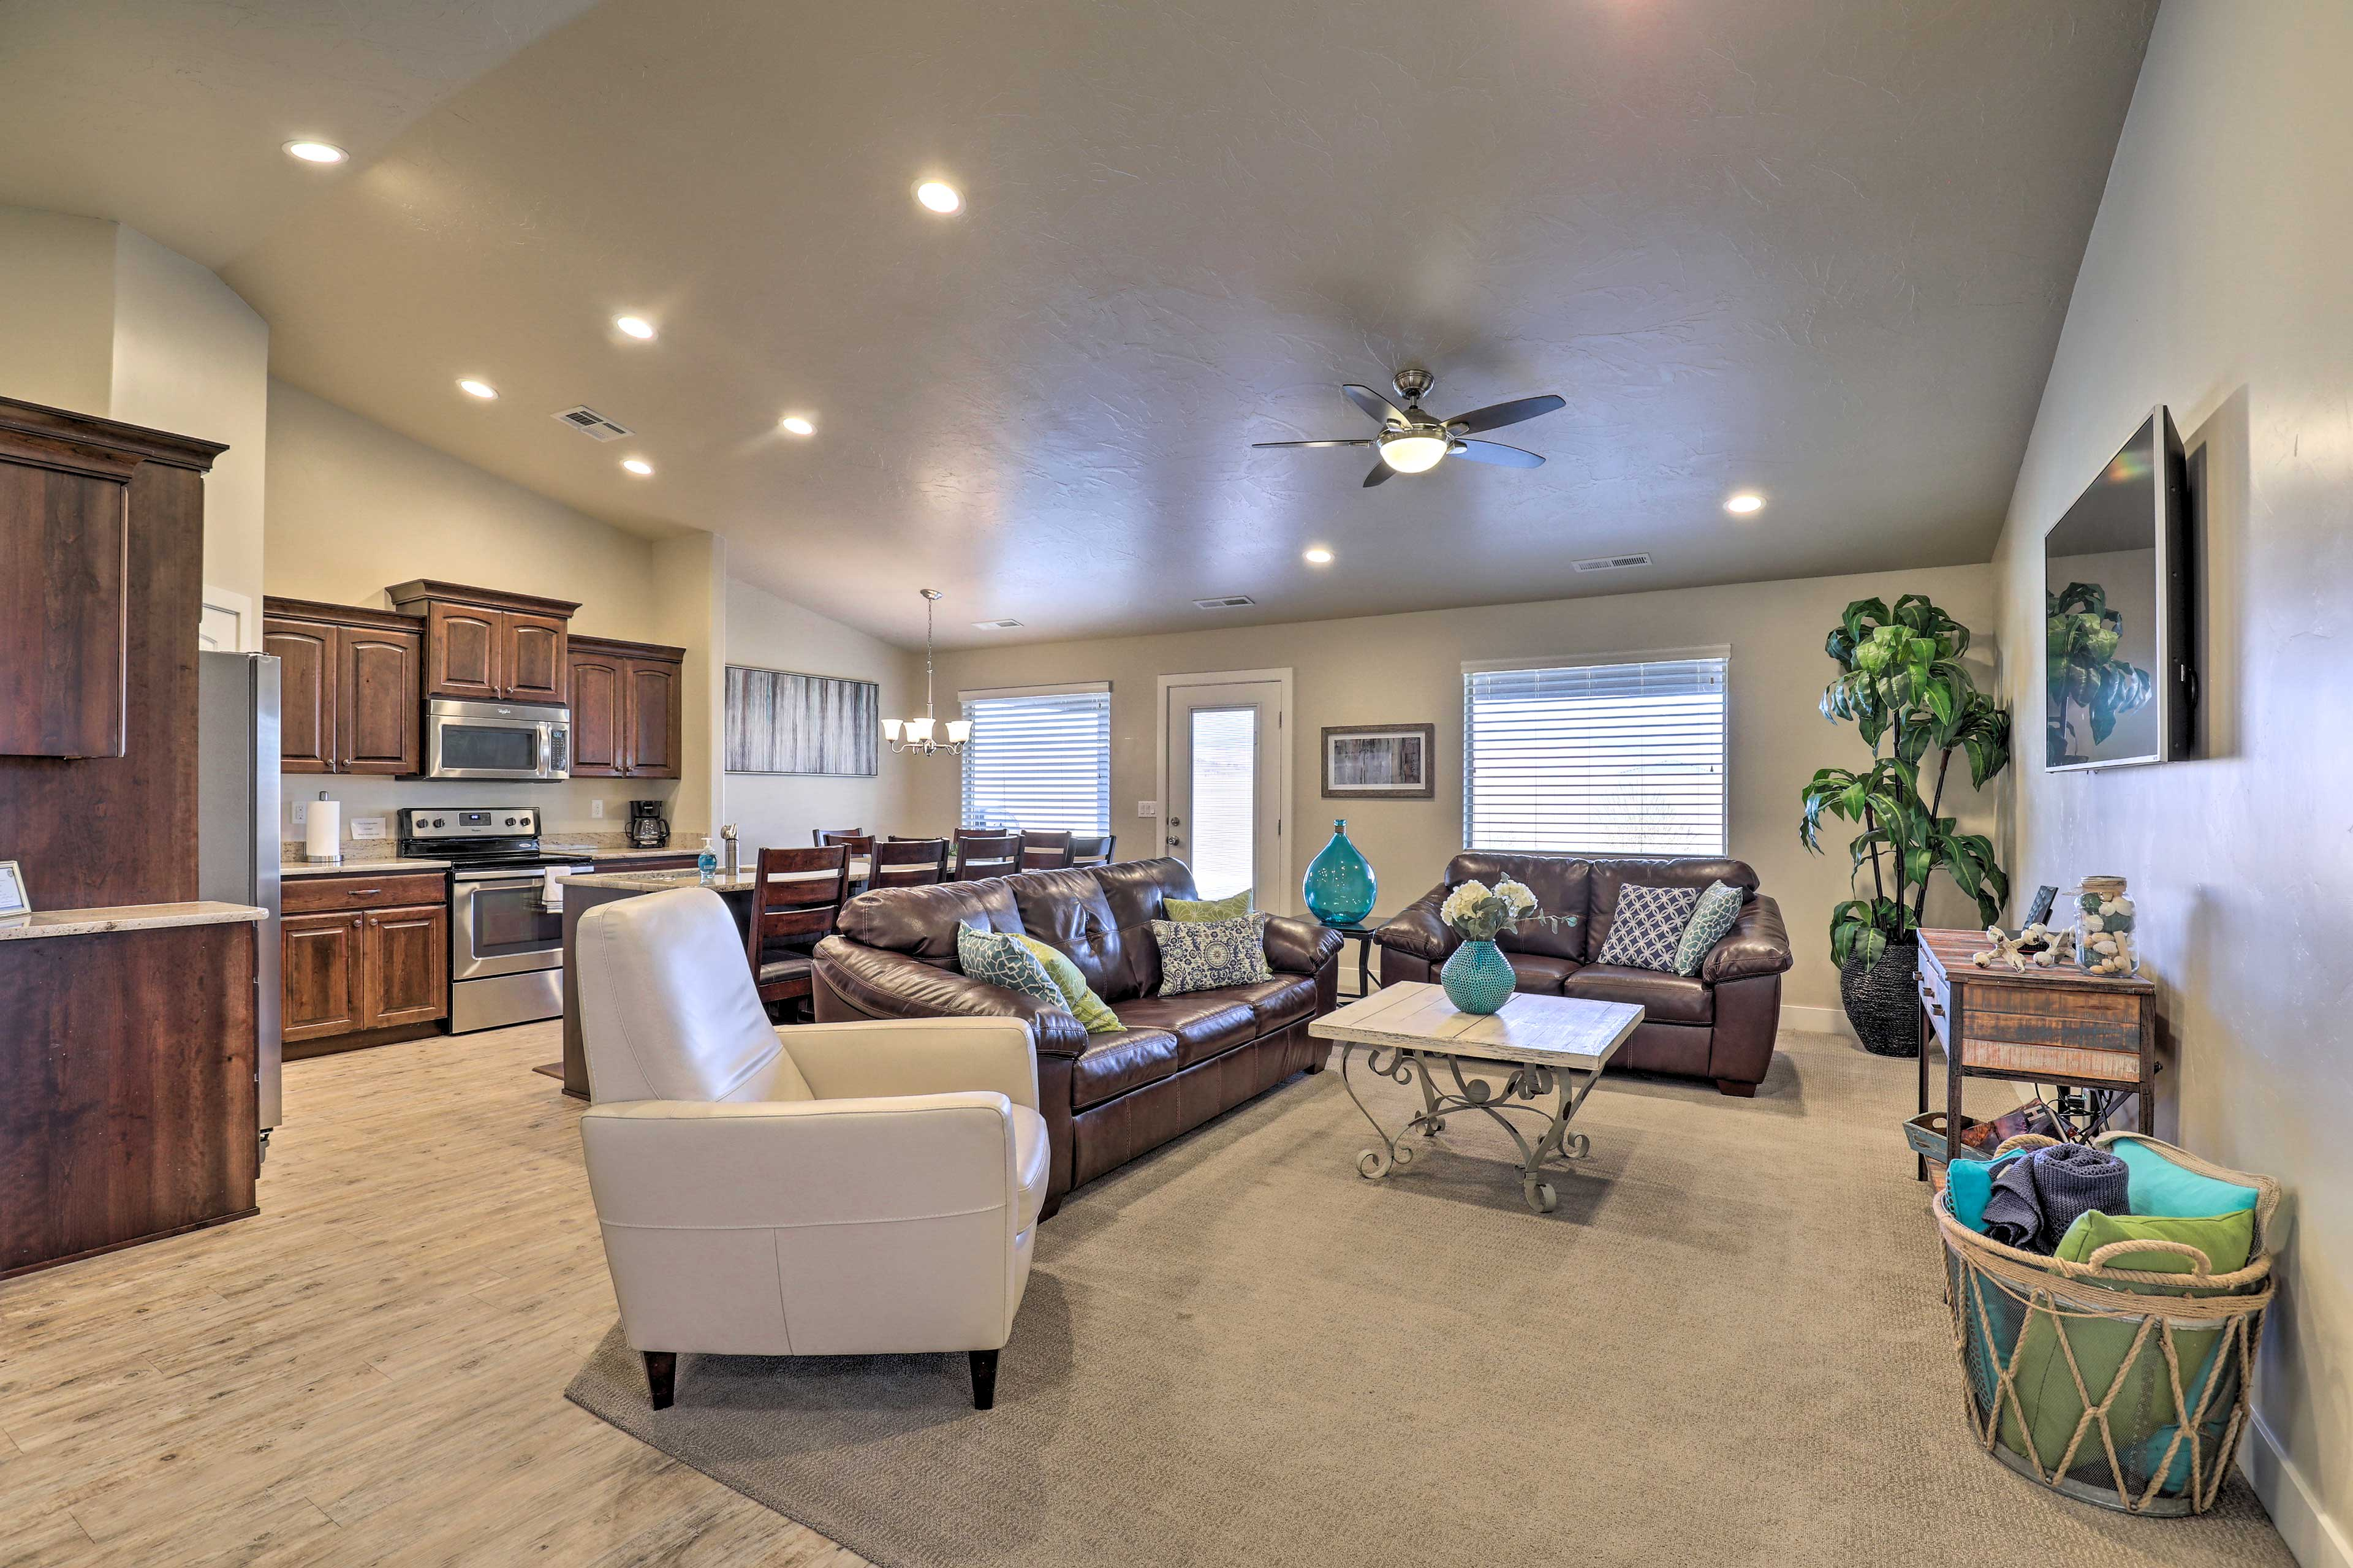 The interior offers over 1,800 square feet of living space.